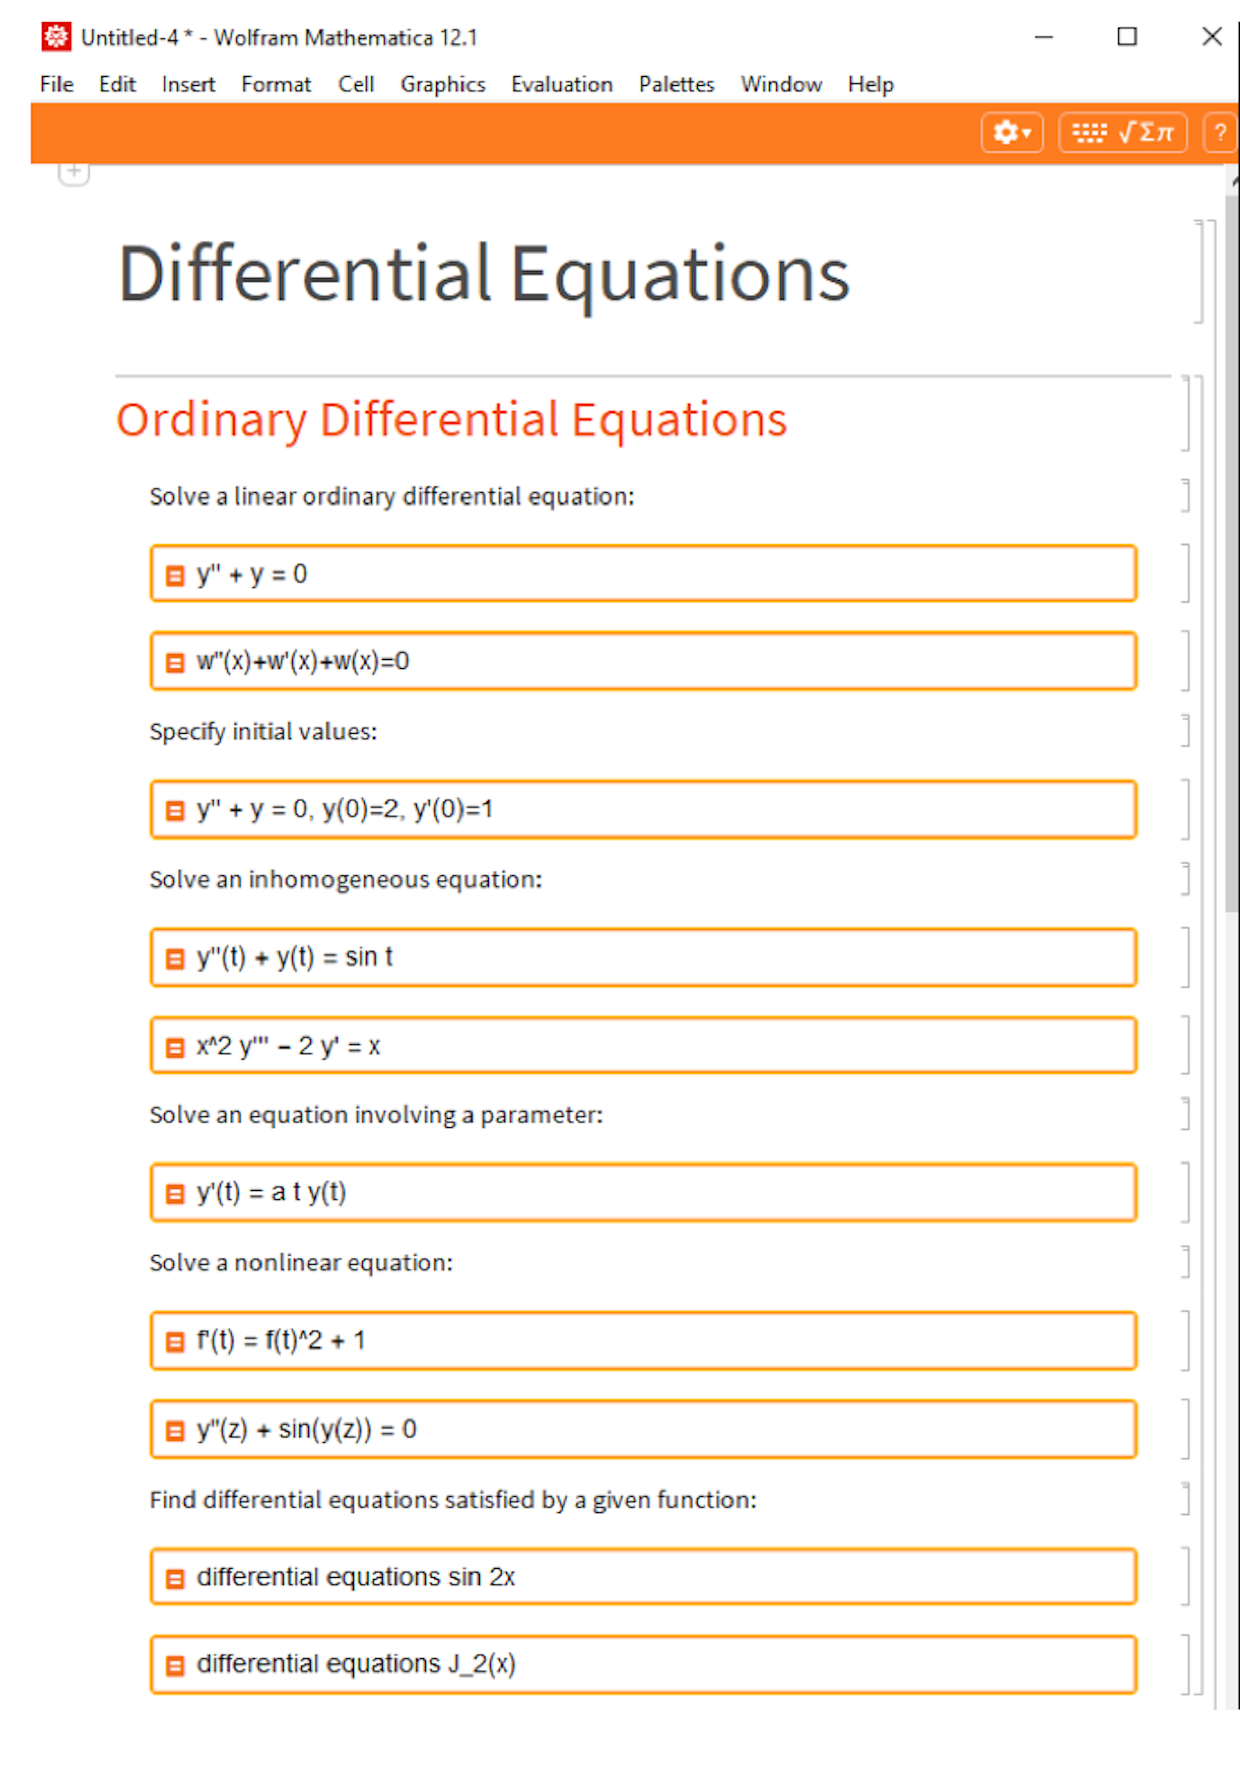 Differential equations notebook